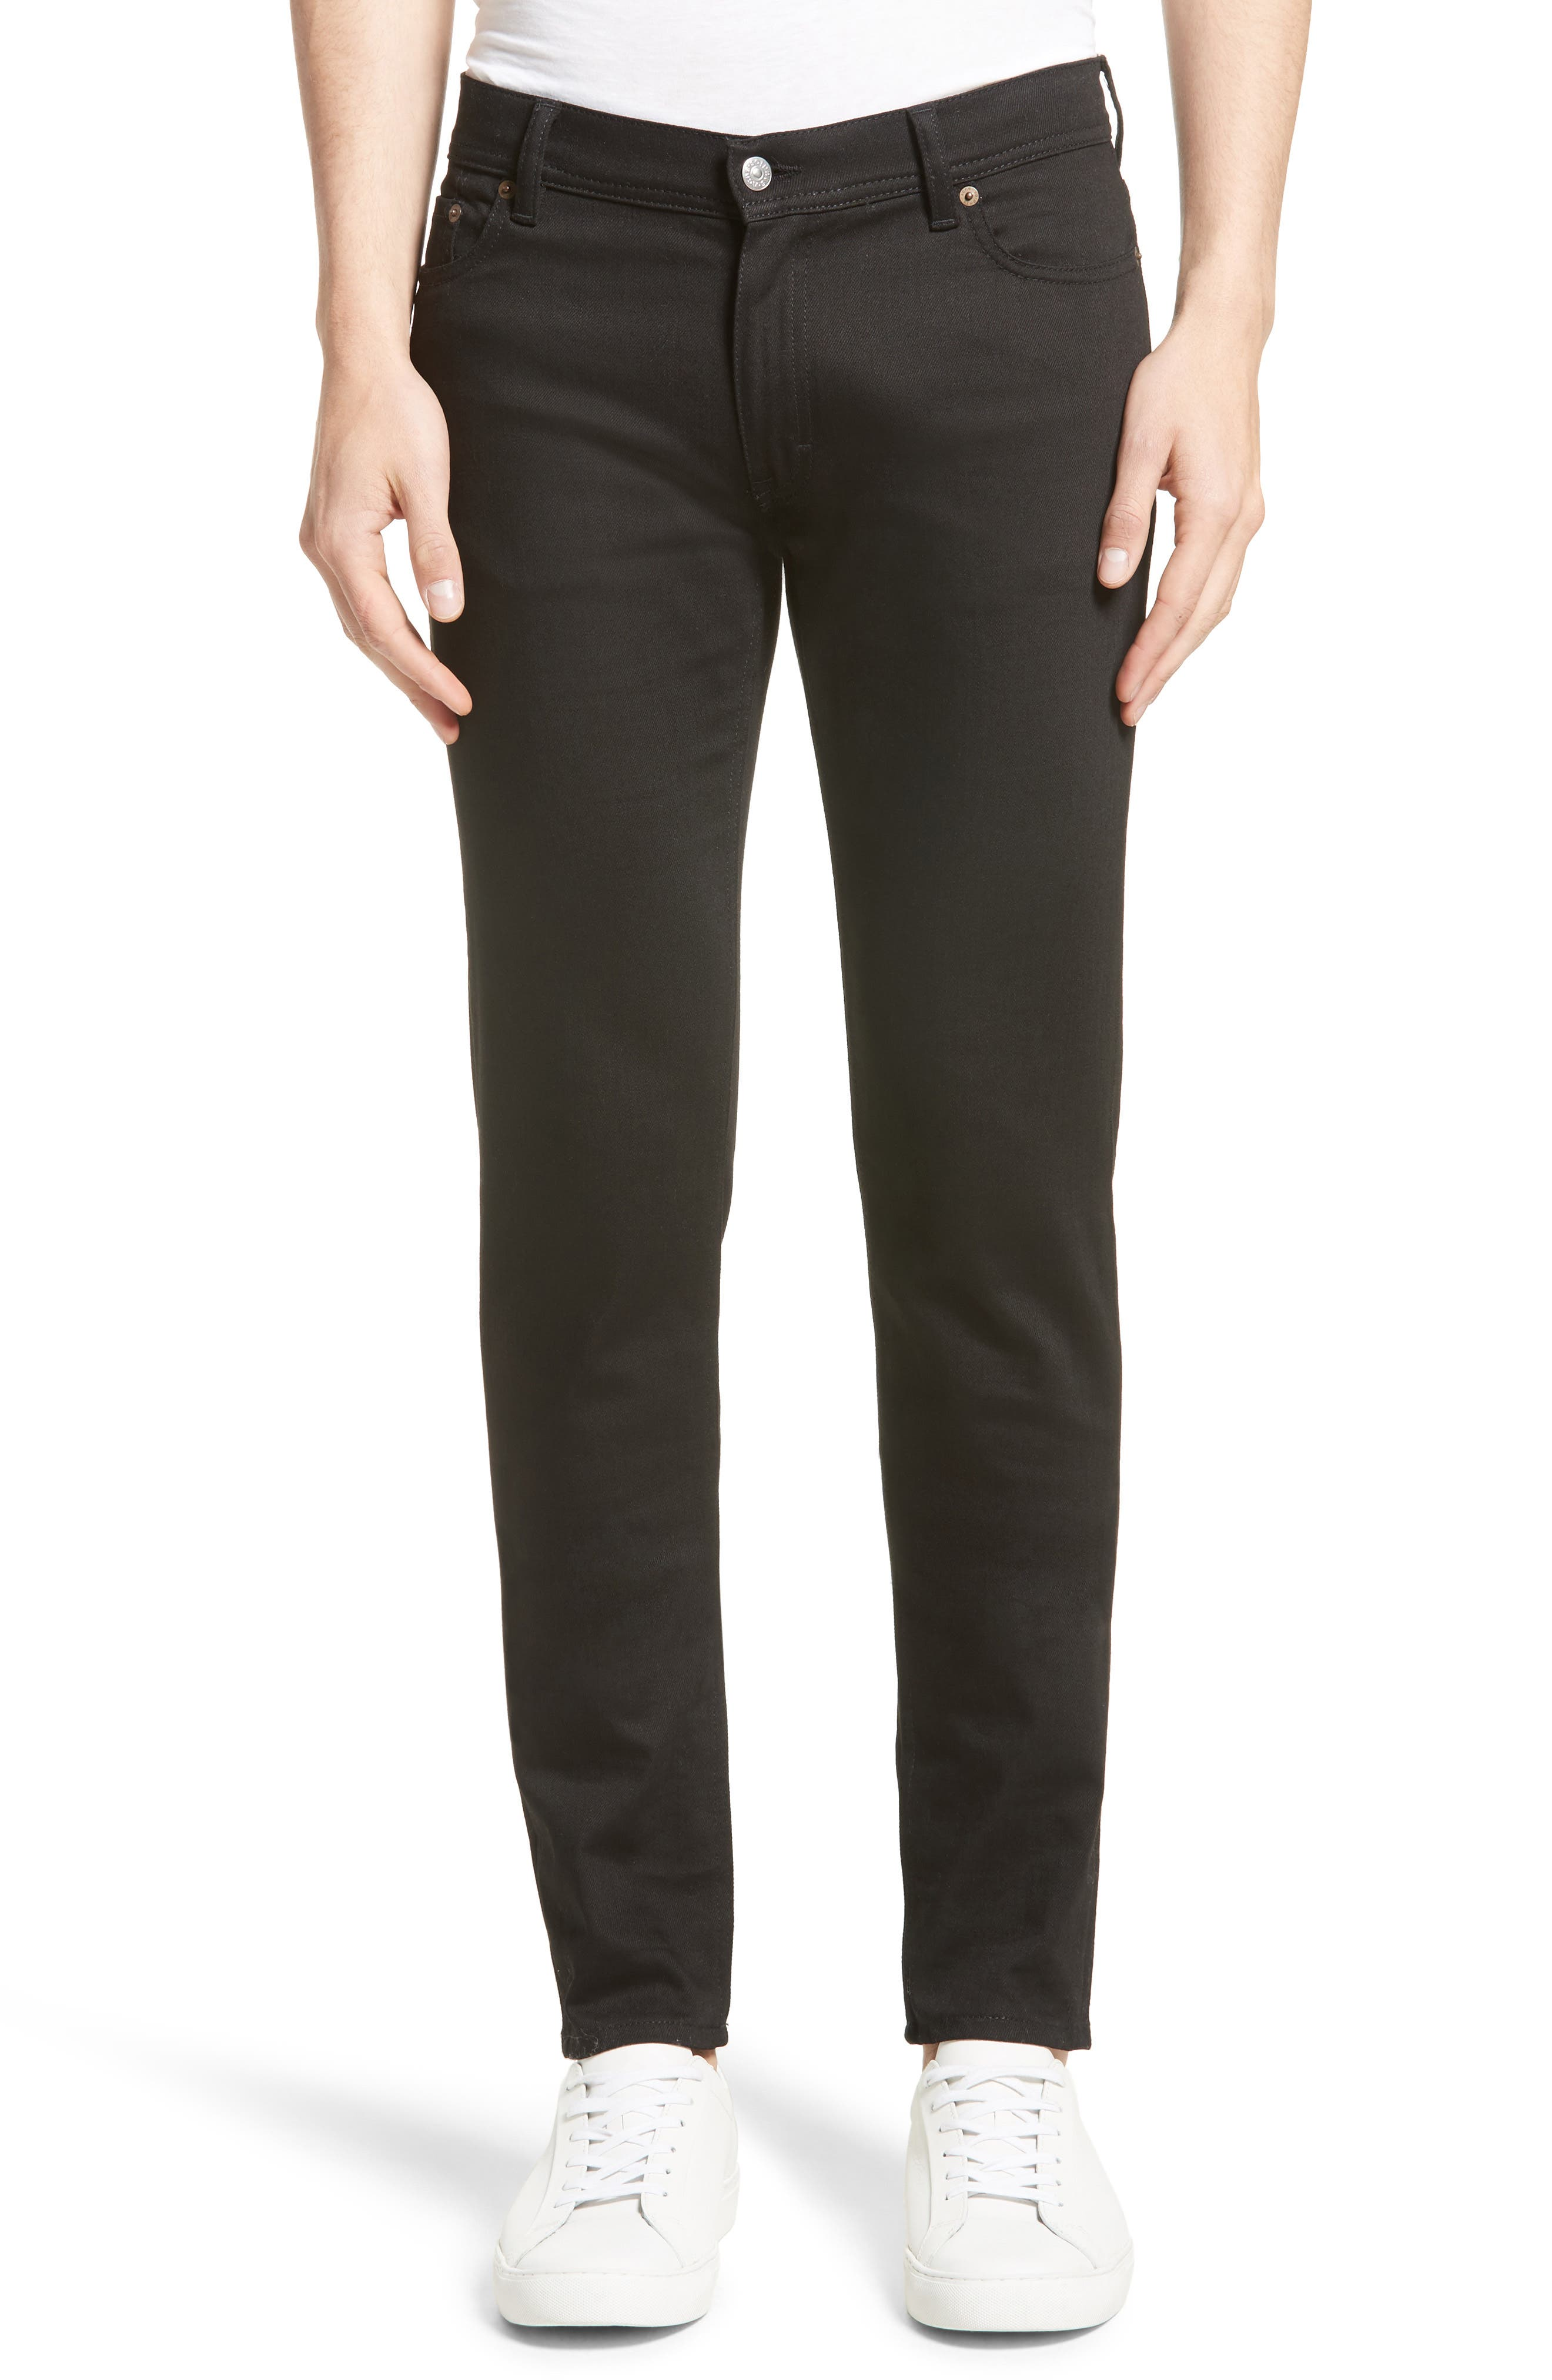 North Skinny Jeans,                         Main,                         color, 001